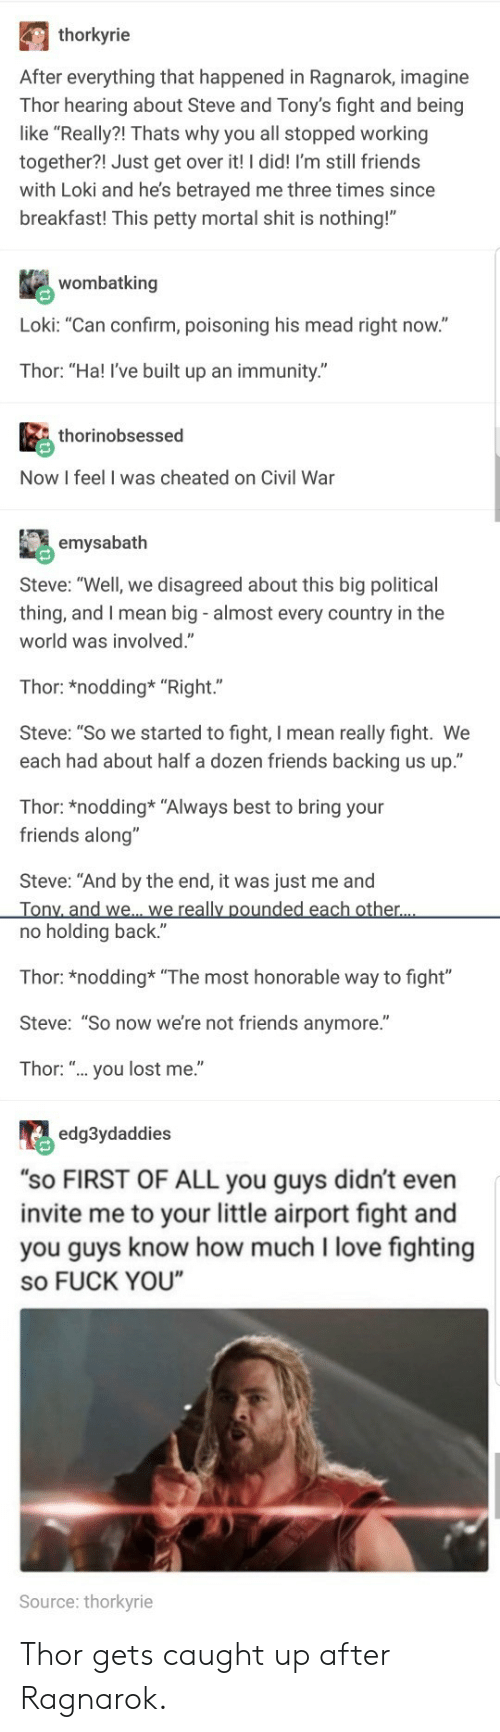 "Still Friends: thorkyrie  After everything that happened in Ragnarok, imagine  Thor hearing about Steve and Tony's fight and being  like ""Really?! Thats why you all stopped working  together?! Just get over it! I did! I'm still friends  with Loki and he's betrayed me three times since  breakfast! This petty mortal shit is nothing!""  wombatking  Loki: ""Can confirm, poisoning his mead right now.""  Thor: ""Ha! I've built up an immunity.""  thorinobsessed  Now I feel I was cheated on Civil War  emysabath  Steve: ""Well, we disagreed about this big political  thing, and I mean big - almost every country in the  world was involved.""  Thor: *nodding* ""Right.""  Steve: ""So we started to fight, I mean really fight. We  each had about half a dozen friends backing us up.""  Thor: *nodding* ""Always best to bring your  friends along""  Steve: ""And by the end, it was just me and  no holding back.""  Thor: *nodding ""The most honorable way to fight""  Steve: ""So now we're not friends anymore.""  Thor: "".. you lost me.""  edg3ydaddies  ""sO FIRST OF ALL you guys didn't even  invite me to your little airport fight and  you guys know how much I love fighting  so FUCK YOU  Source: thorkyrie Thor gets caught up after Ragnarok."